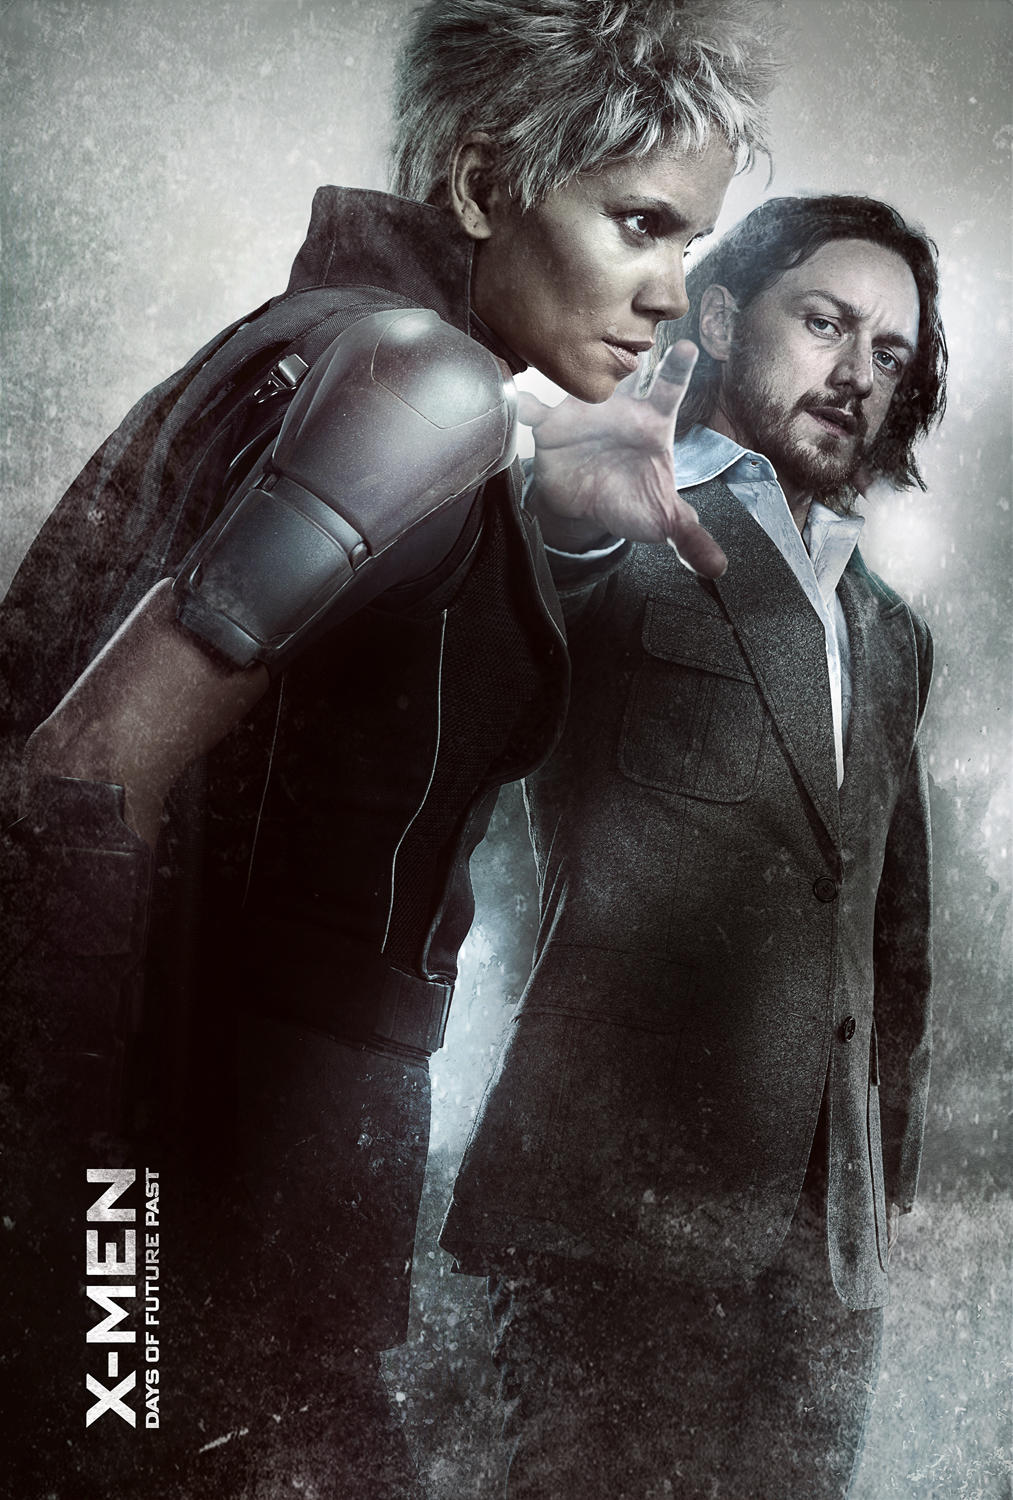 Halle Berry as Storm and James McAvoy as Charles Xavier ...